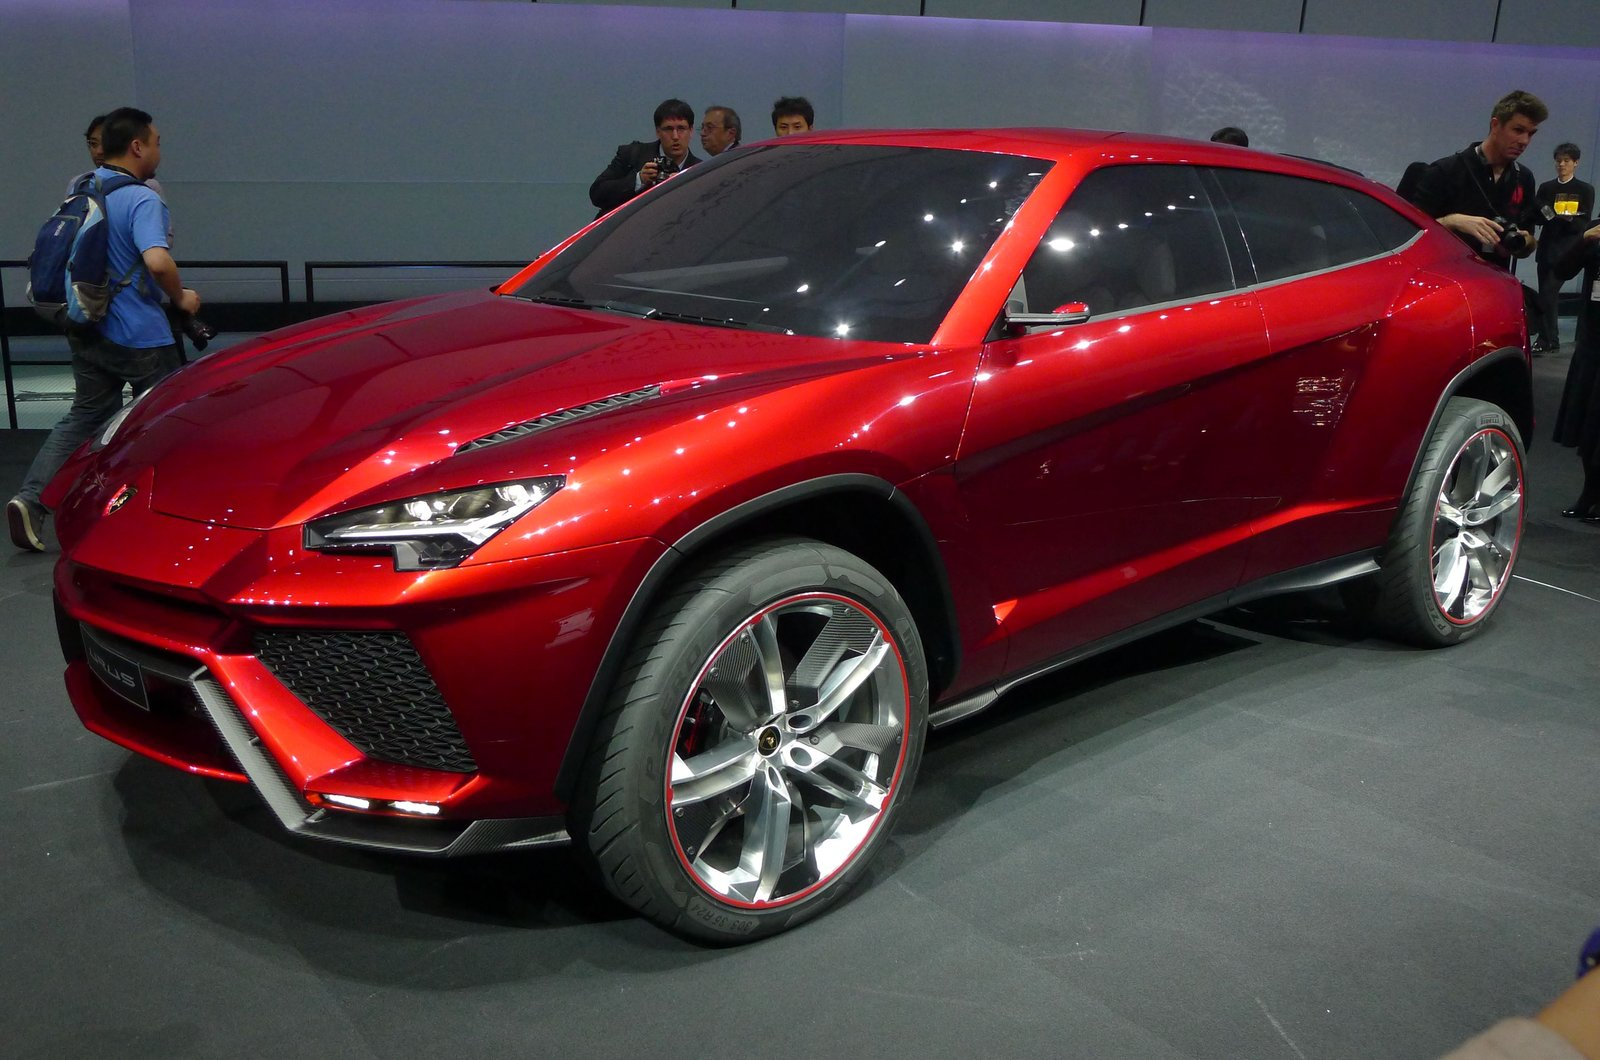 beijing motor show 2012 lamborghini urus suv autocar. Black Bedroom Furniture Sets. Home Design Ideas